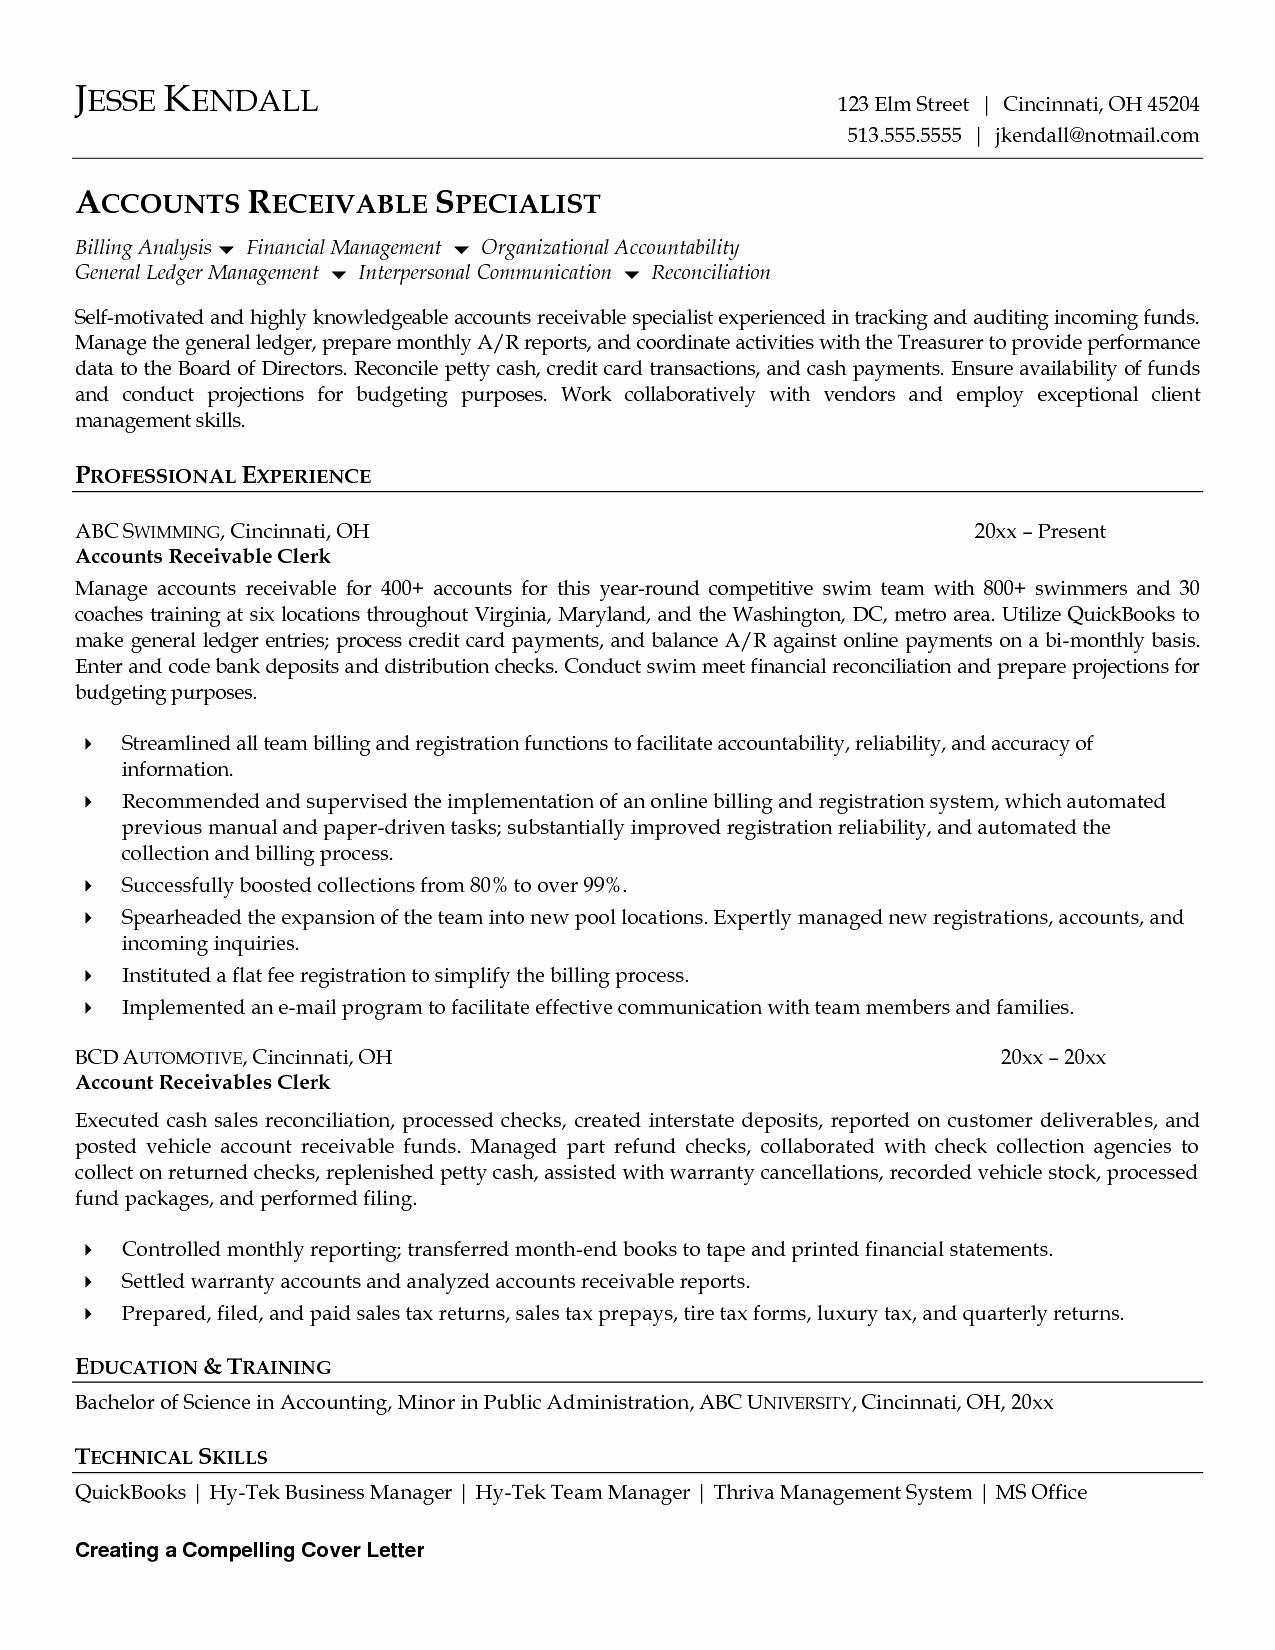 Account Payable Resume Template